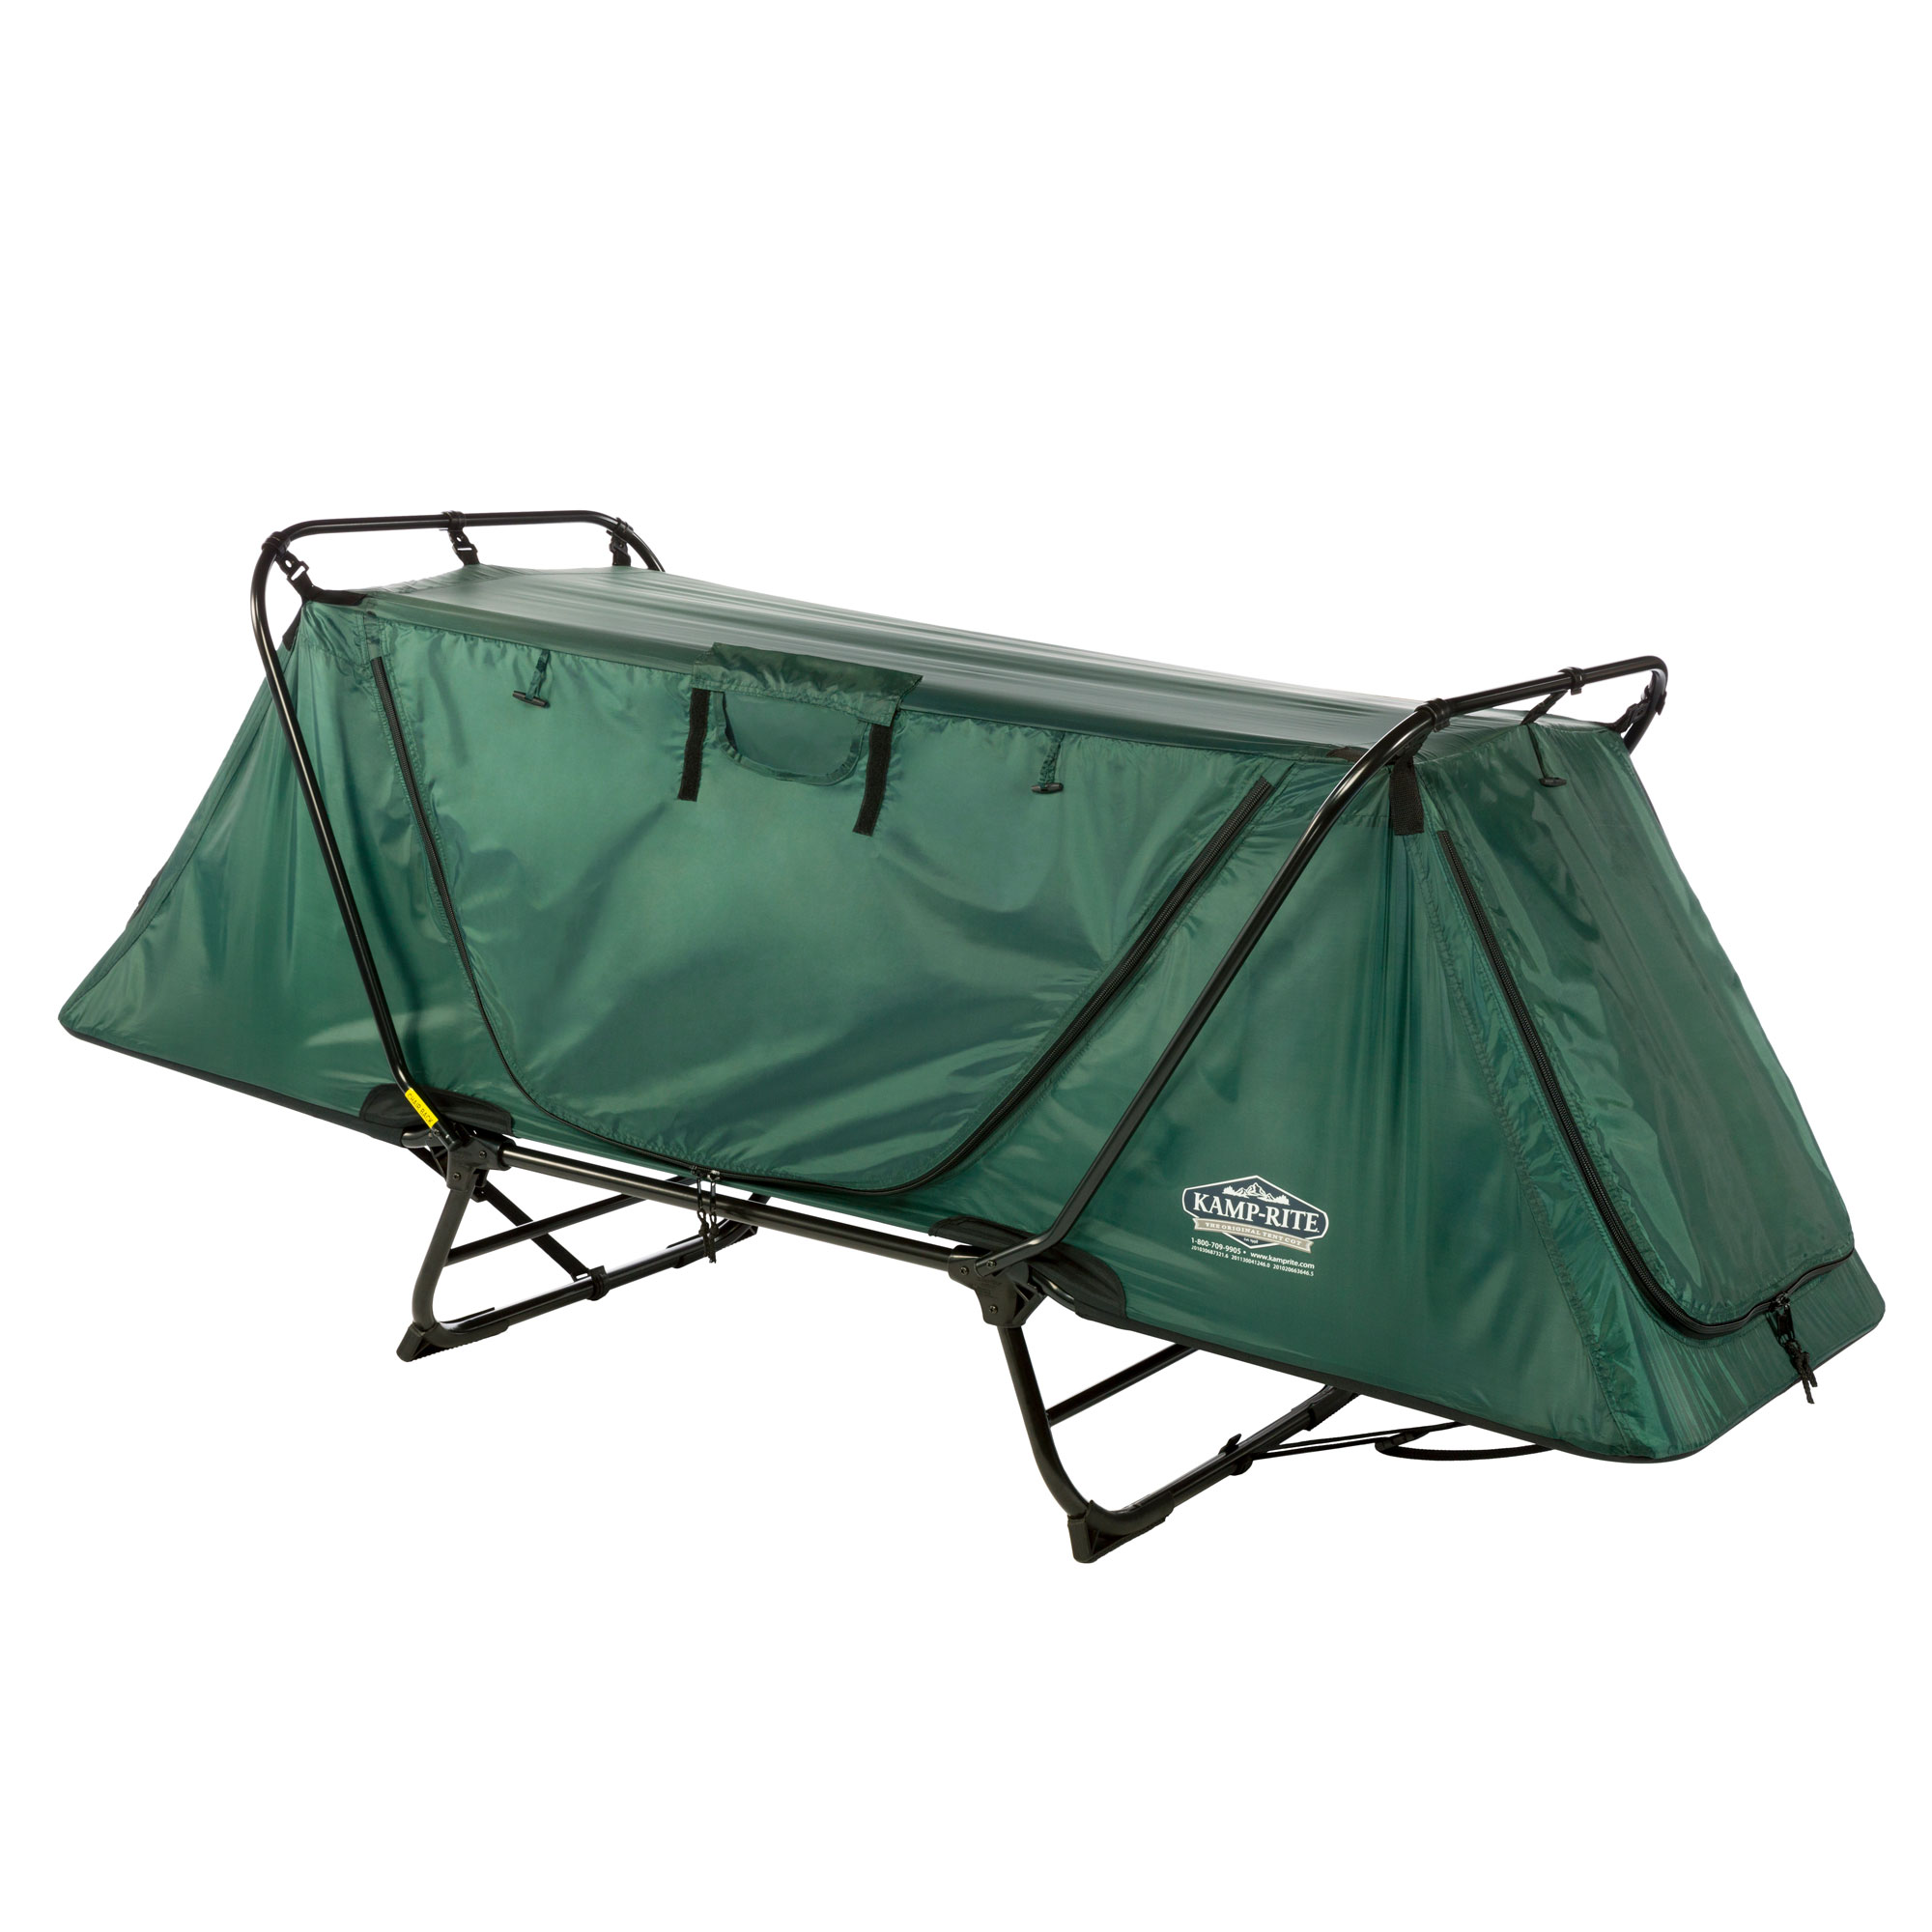 Kamp Rite Original Tent Cot Folding Camping And Hiking Bed